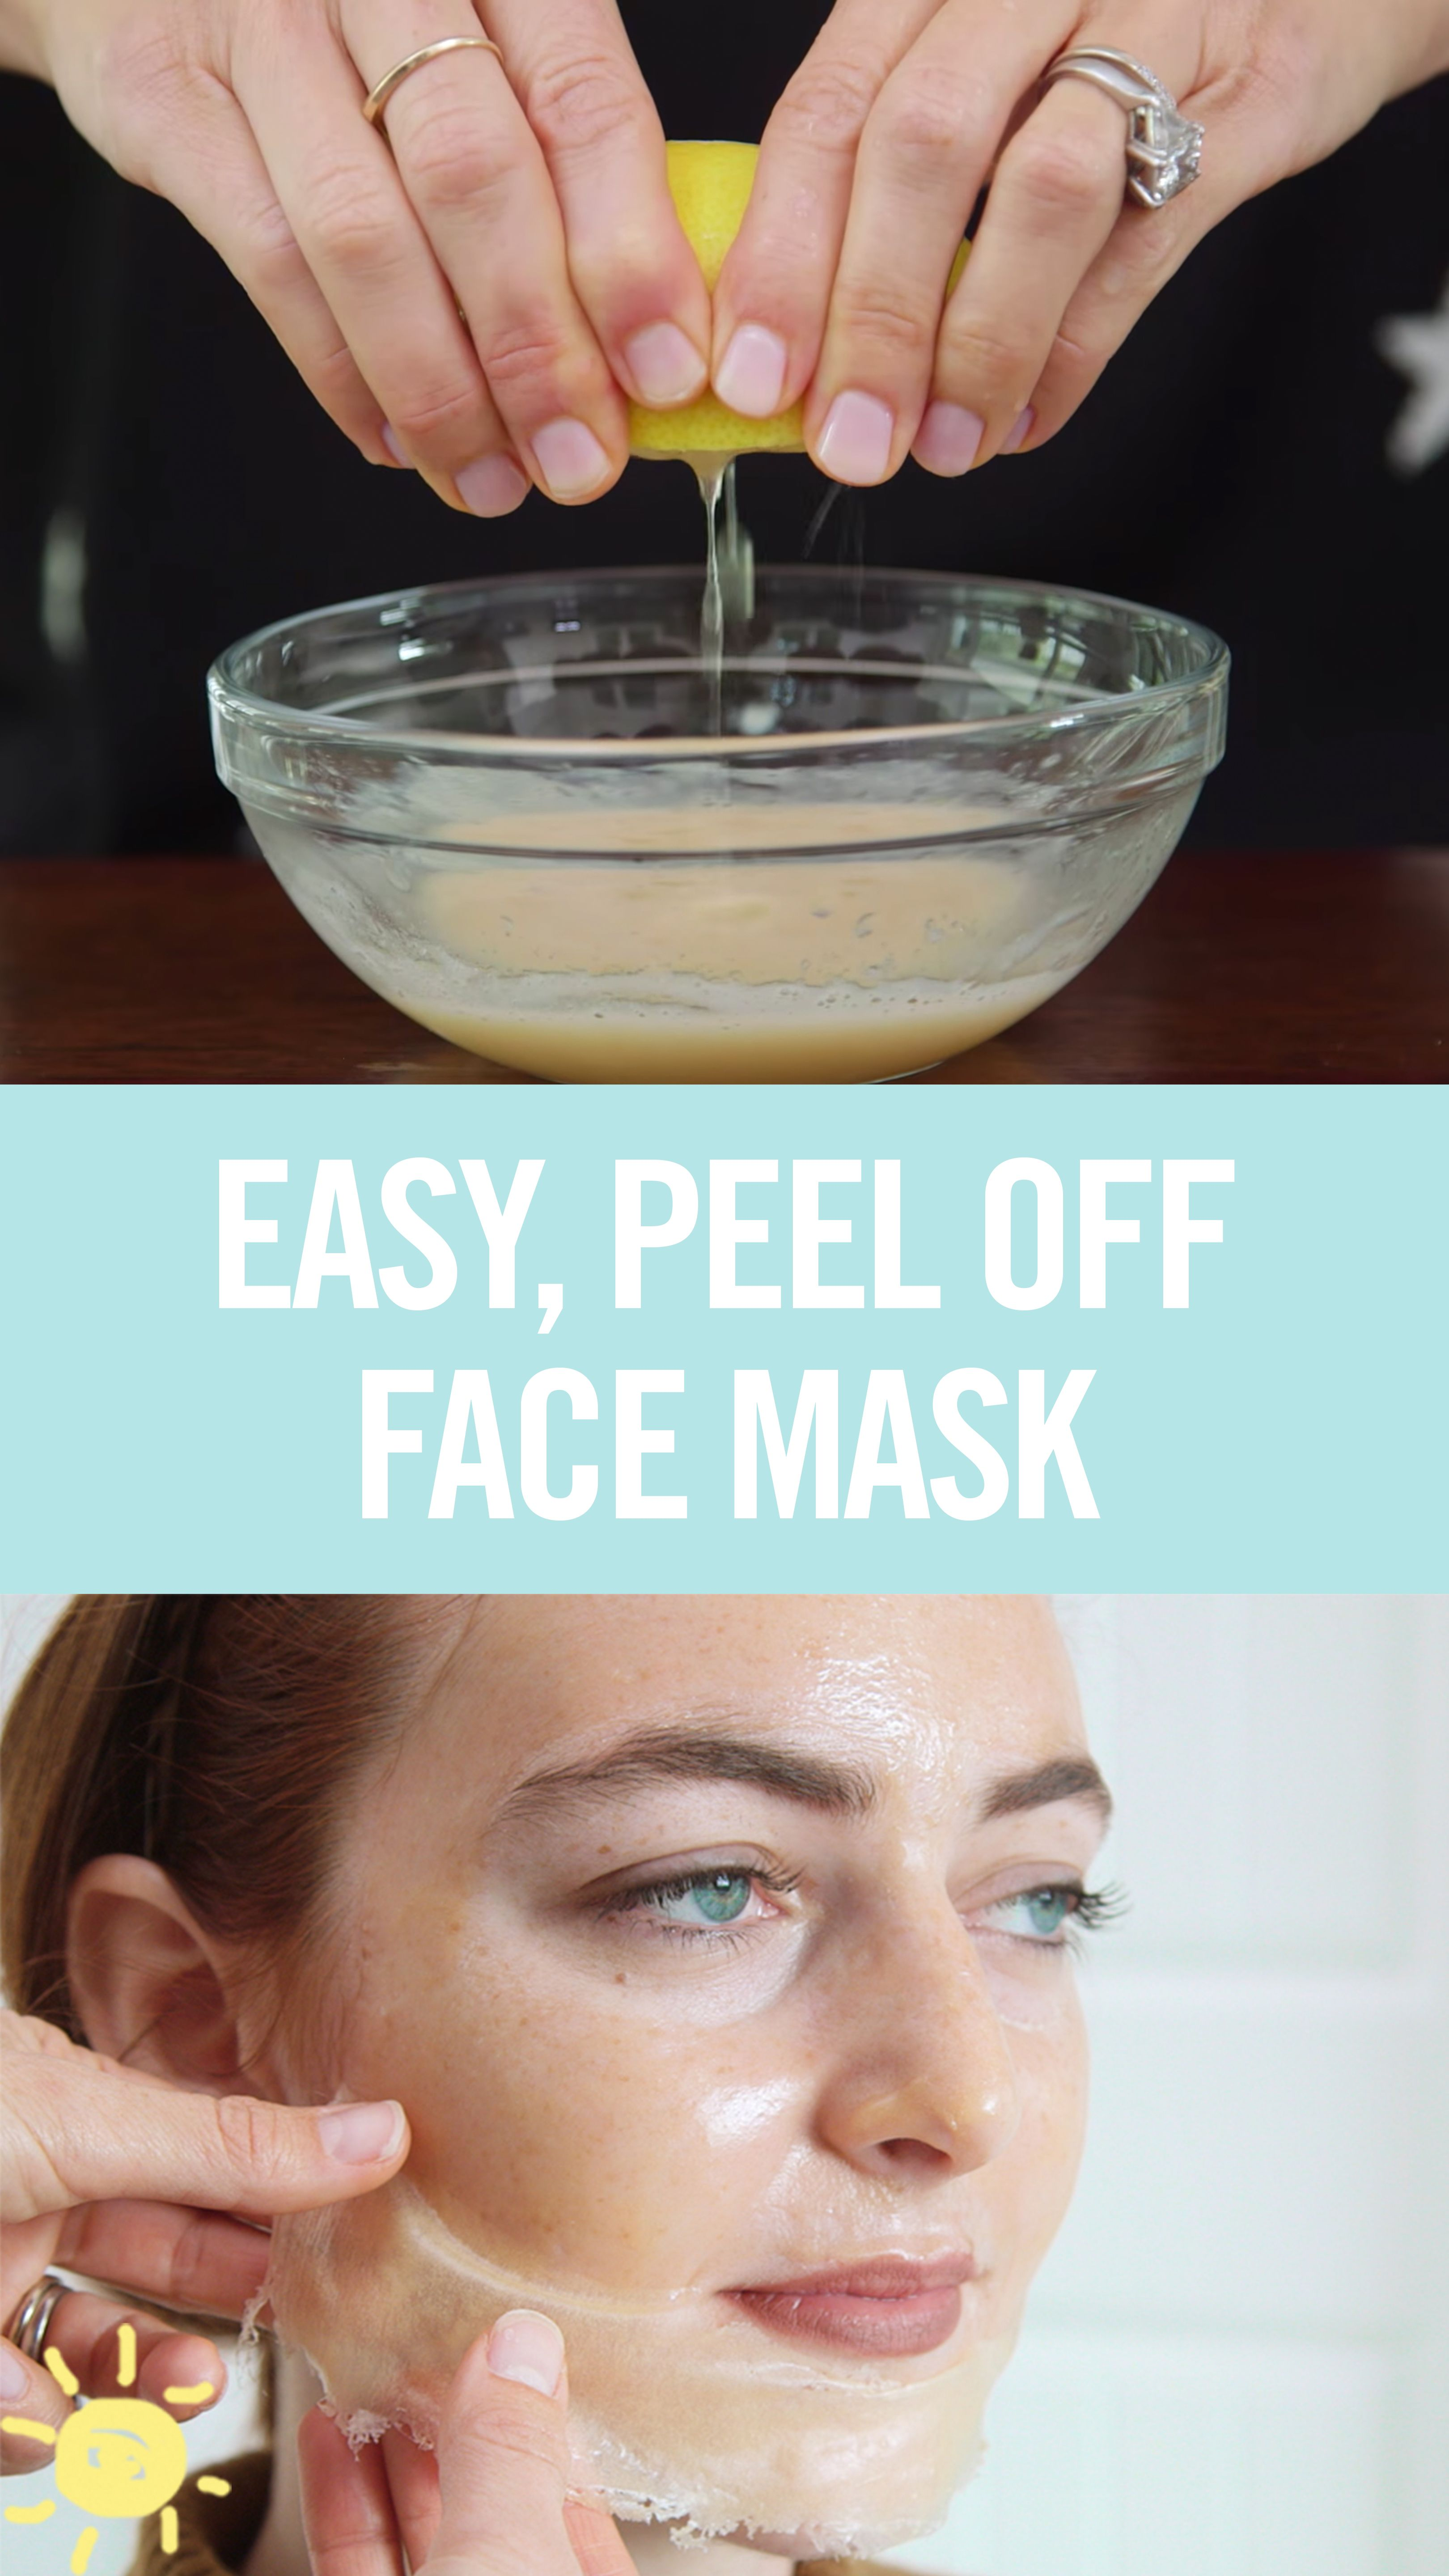 This is seriously the best face mask I have ever used. It removes dead skin cells as well as blackheads and whiteheads and will leave your skin feeling refreshed and renewed!